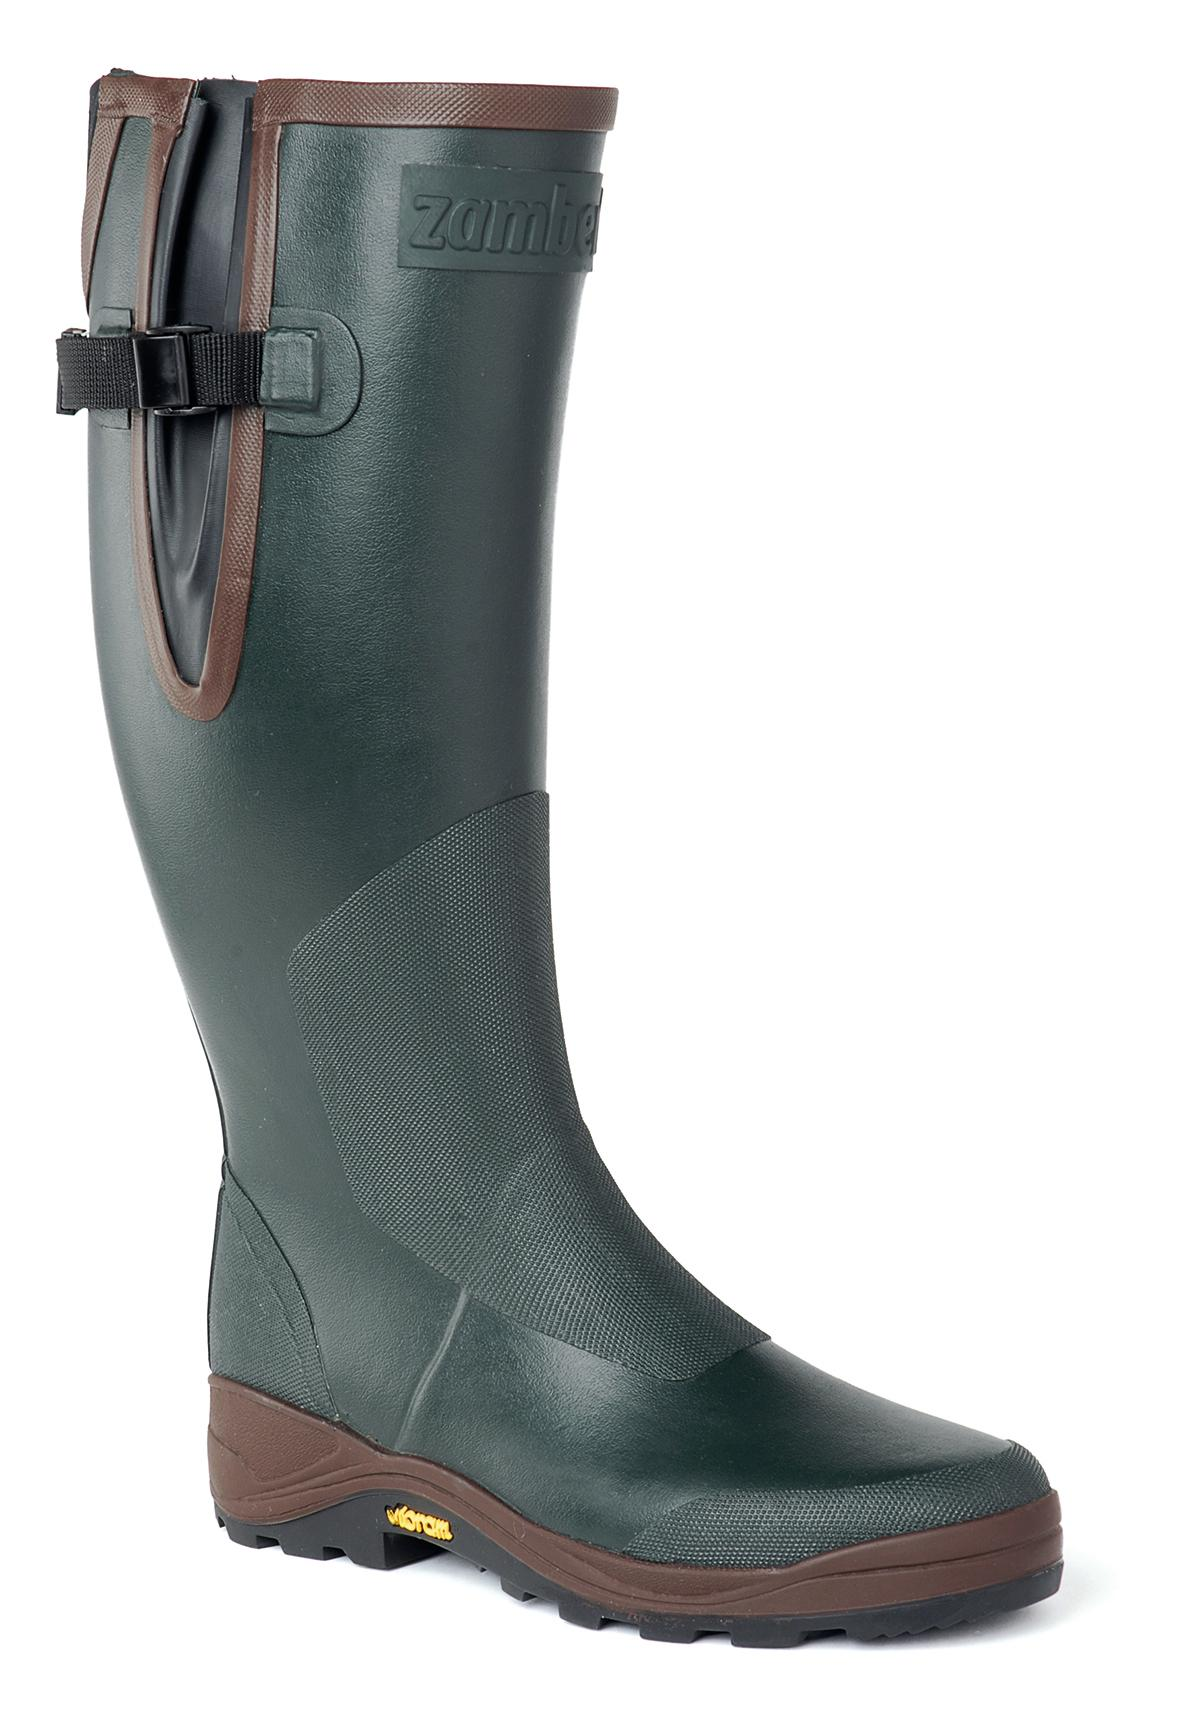 S20 BOOTS  KENYA N.   -   Bottes waders et cuissardes  Chasse     -   Dark Green